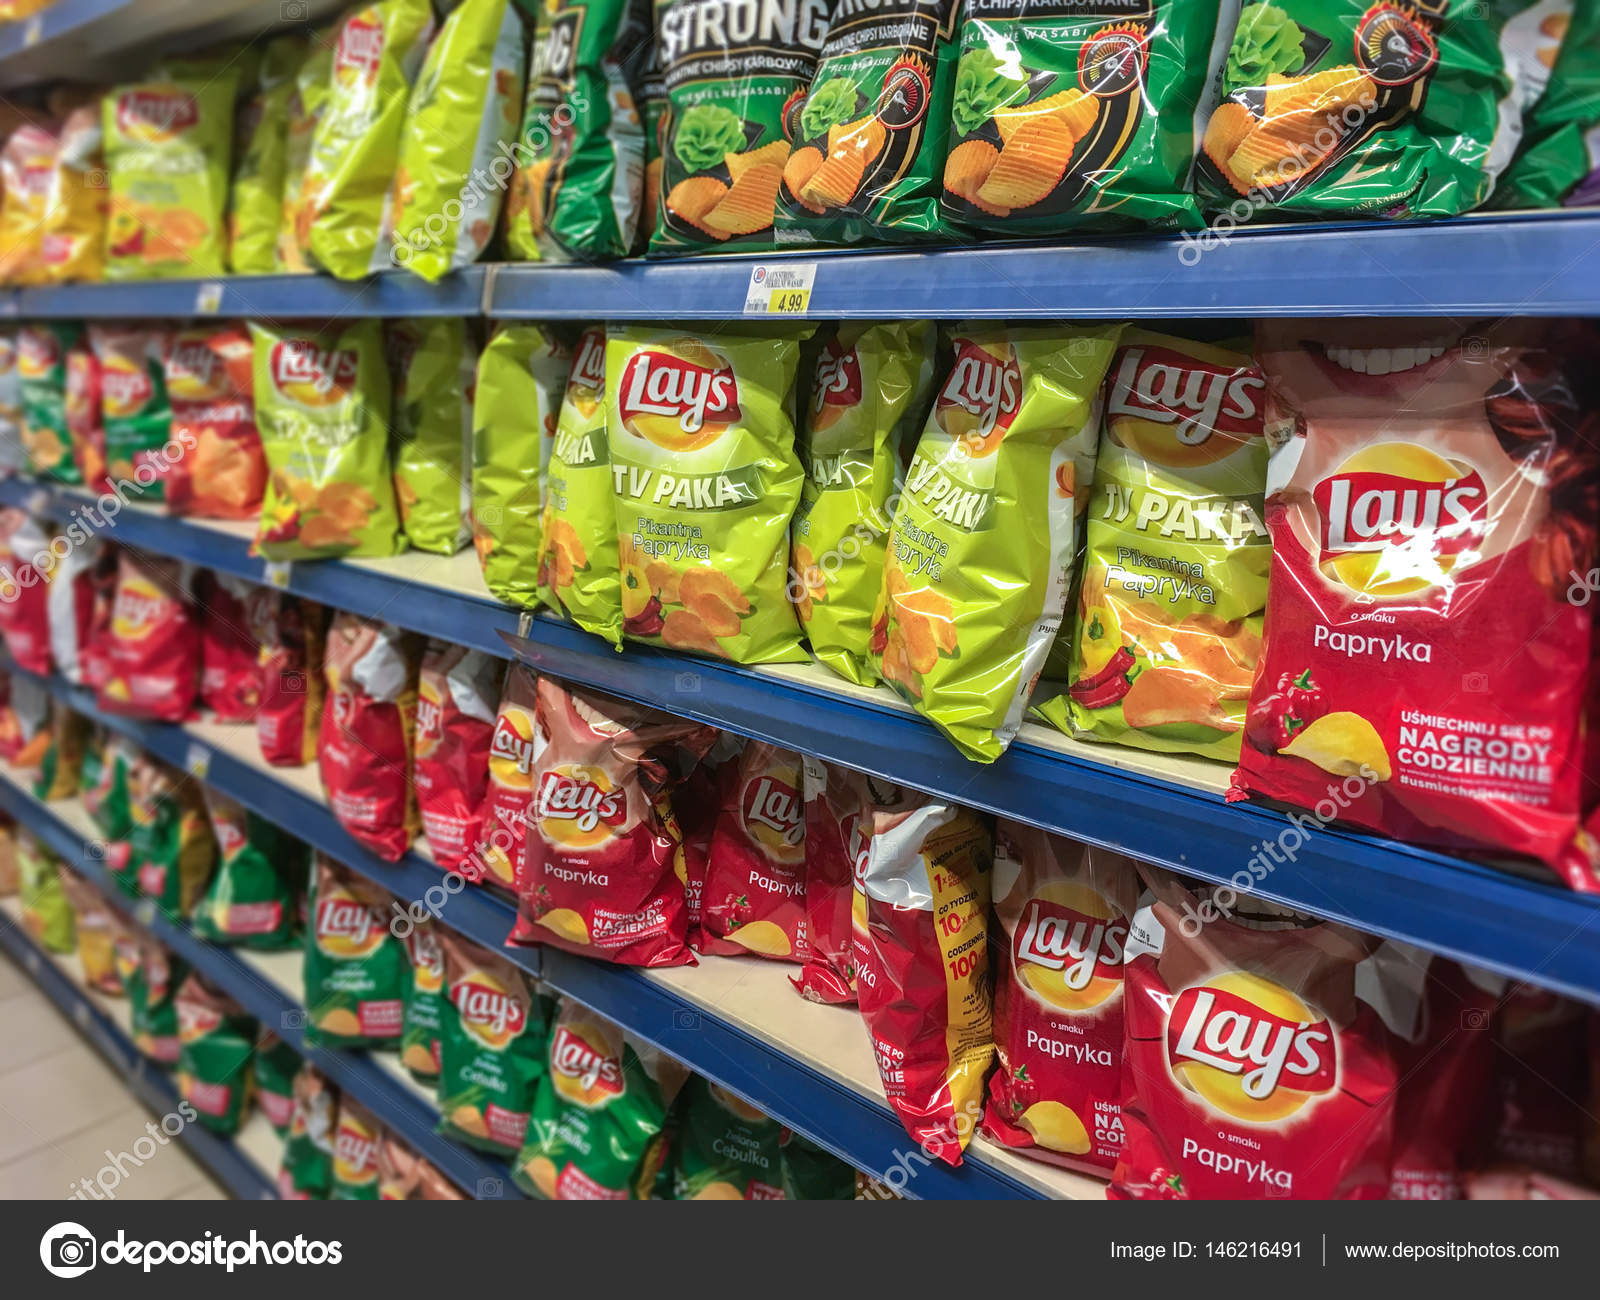 Lays Chips Stock Photos Royalty Free Lays Chips Images Depositphotos